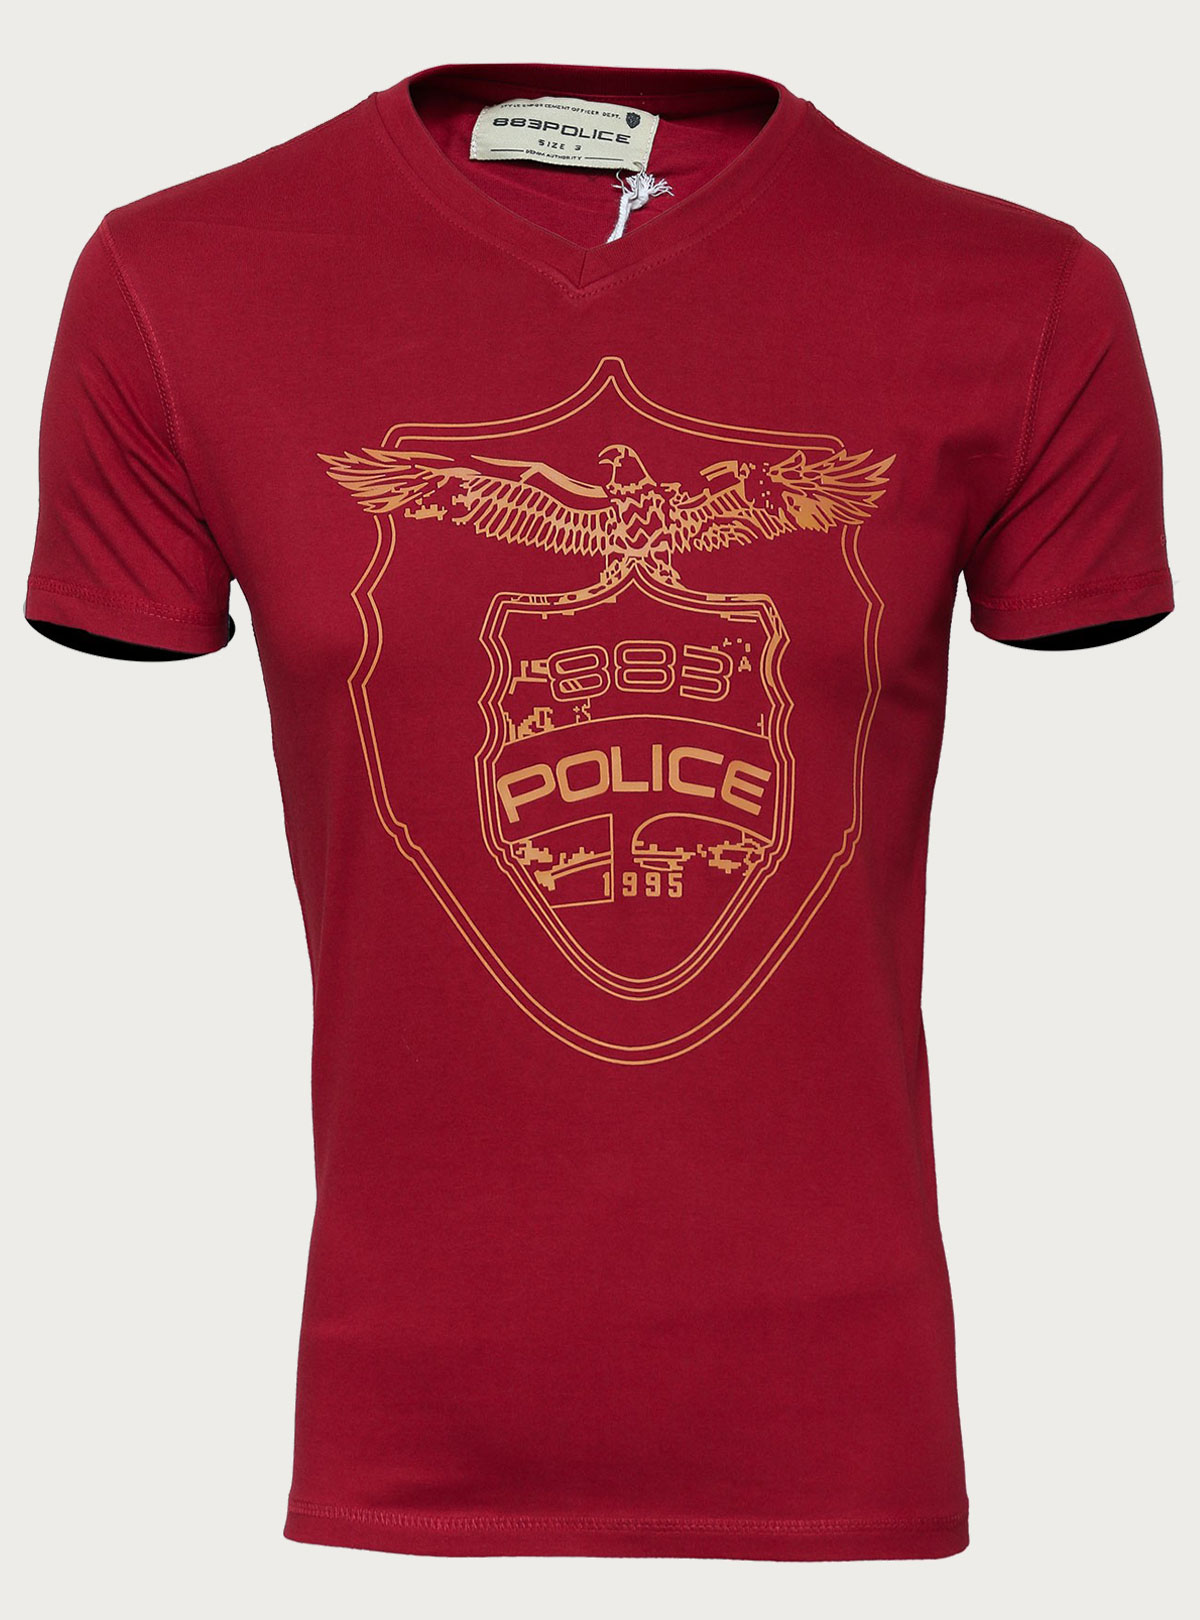 Round T-Shirt By - Police